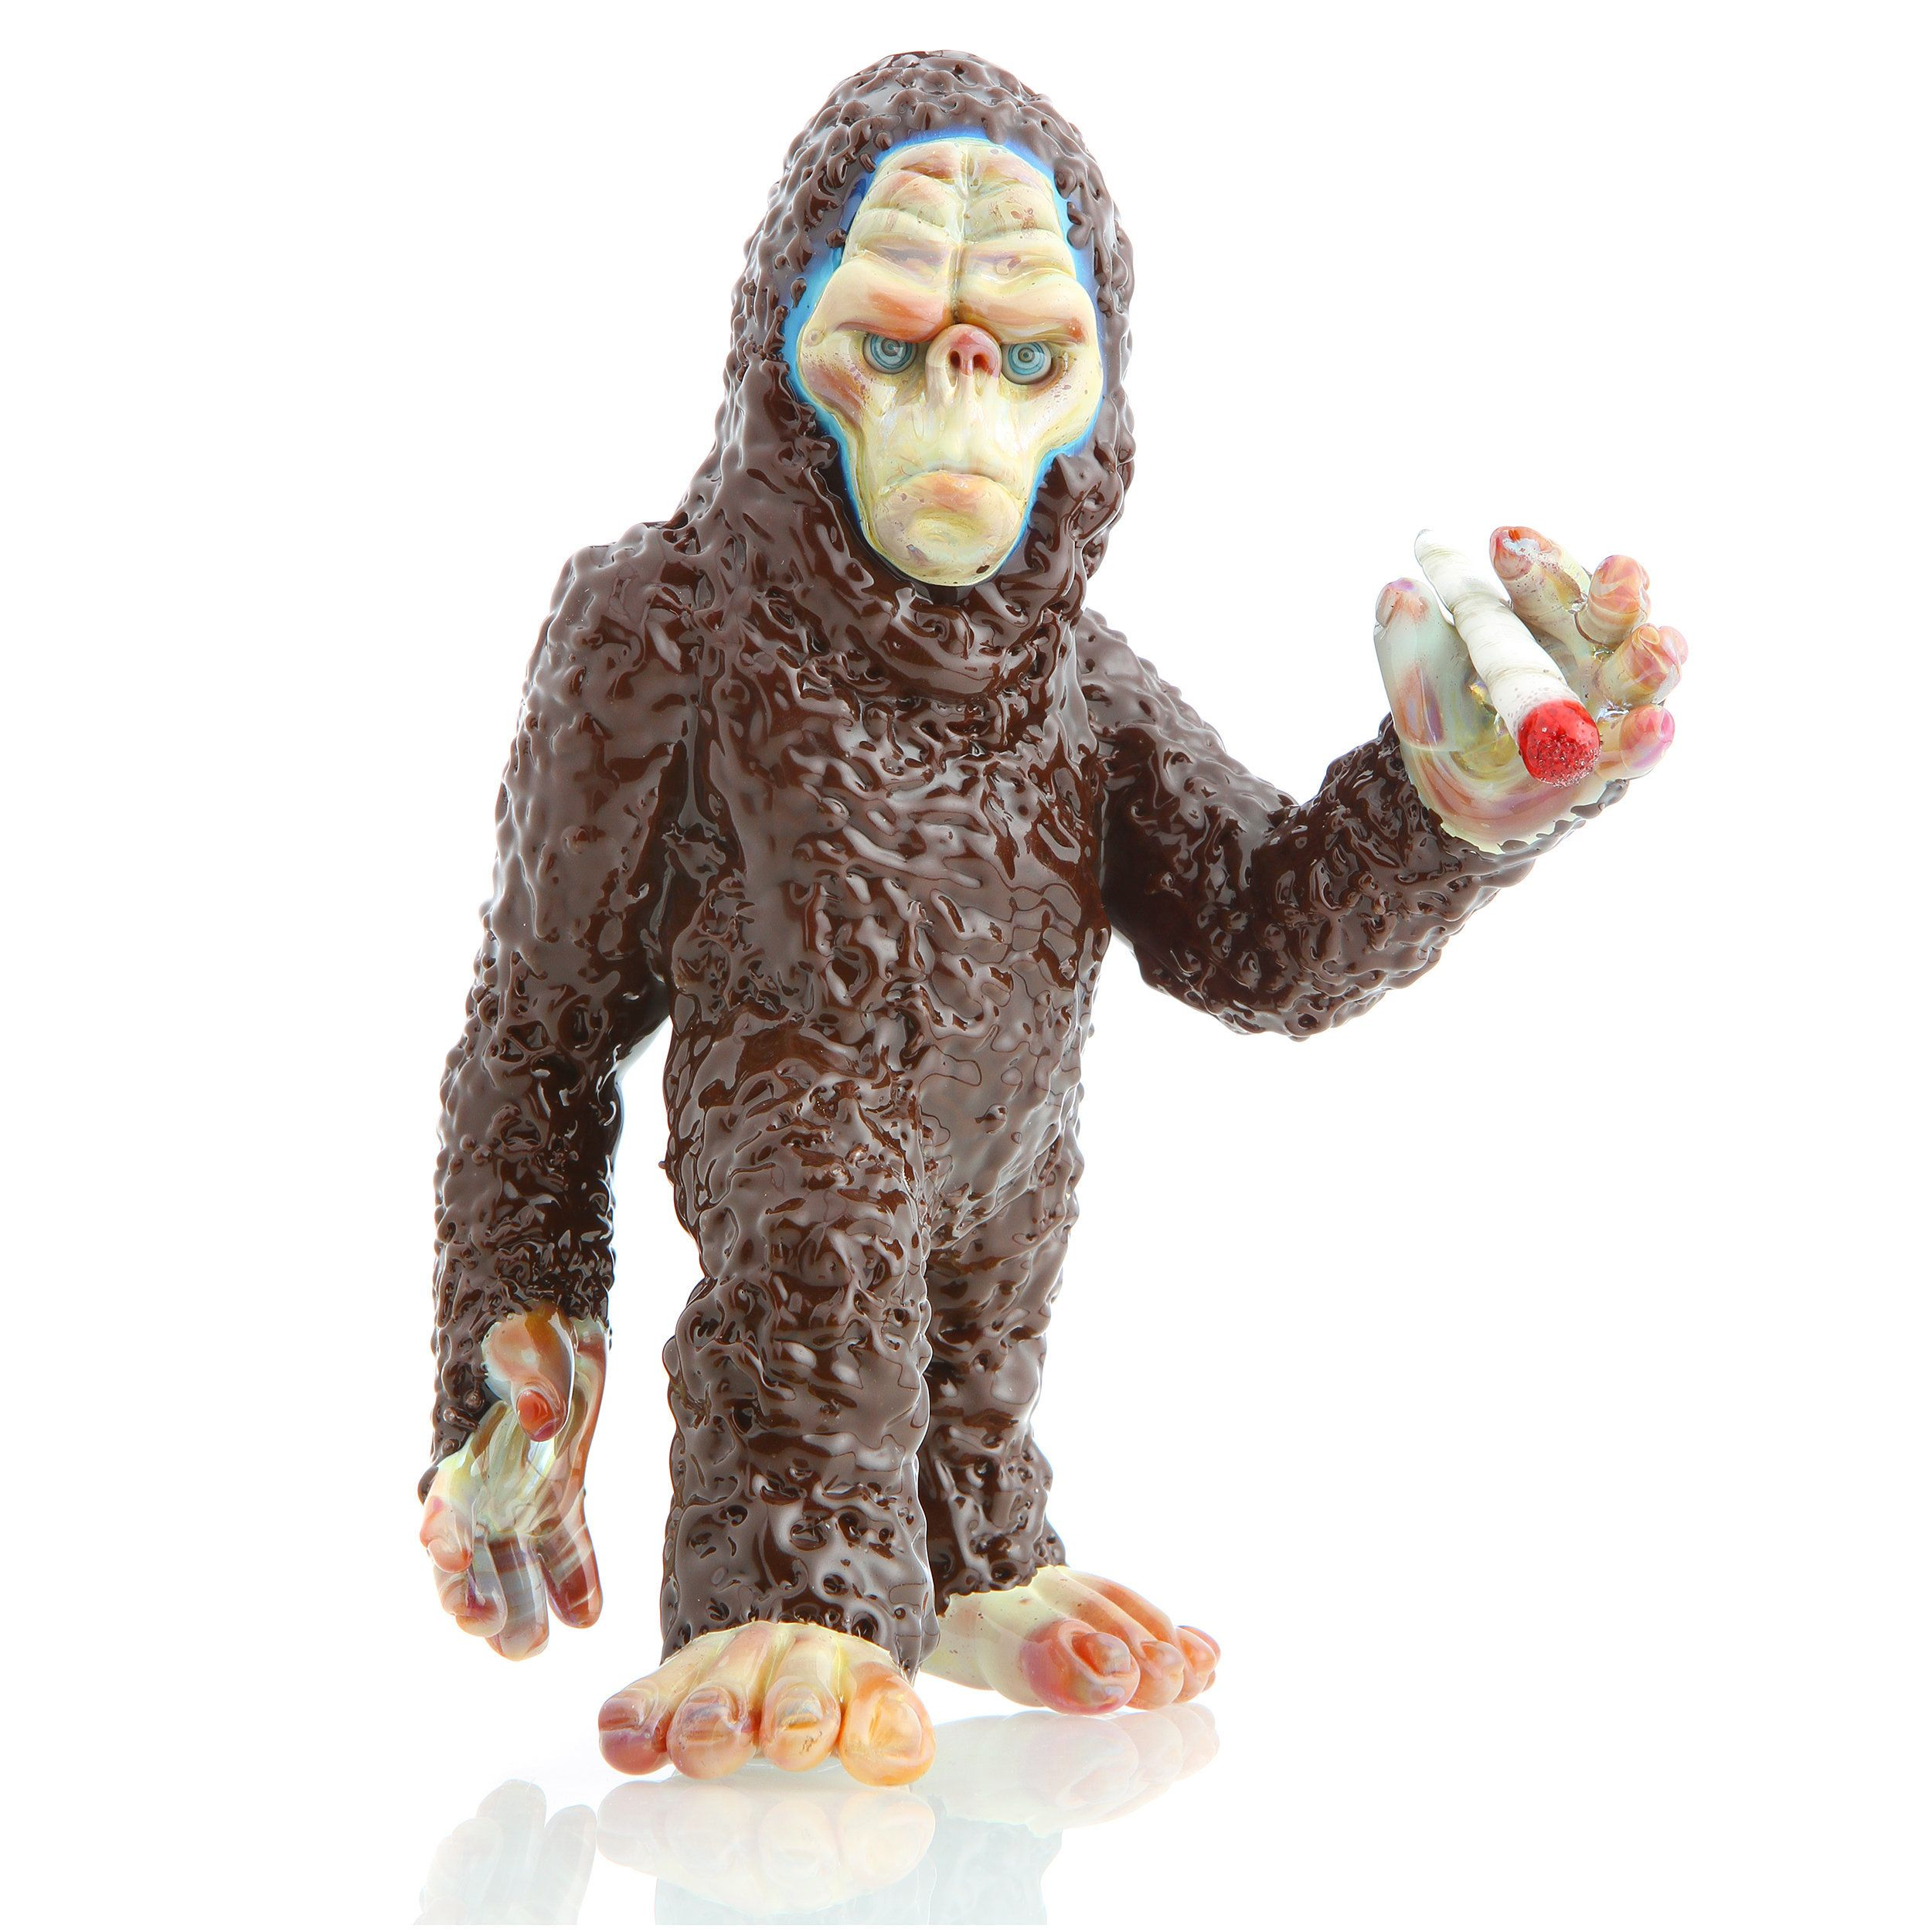 <strong>Coyle</strong>, <i>Smokin Sasquatch</i>, Lampworked borosilicate glass, 6 x 4 x 4 ½ inches